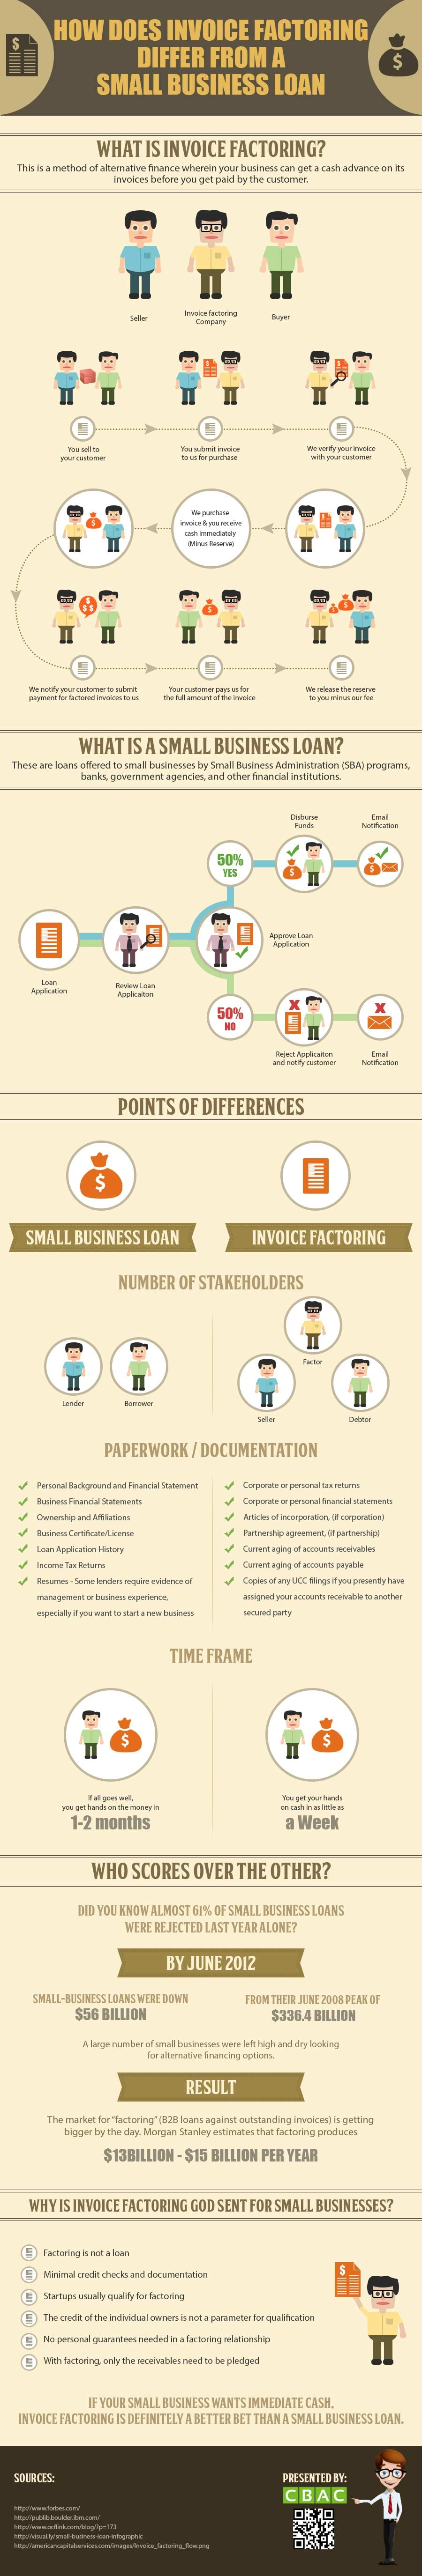 infographic invoice factoring vs small business loan differences small invoice factoring